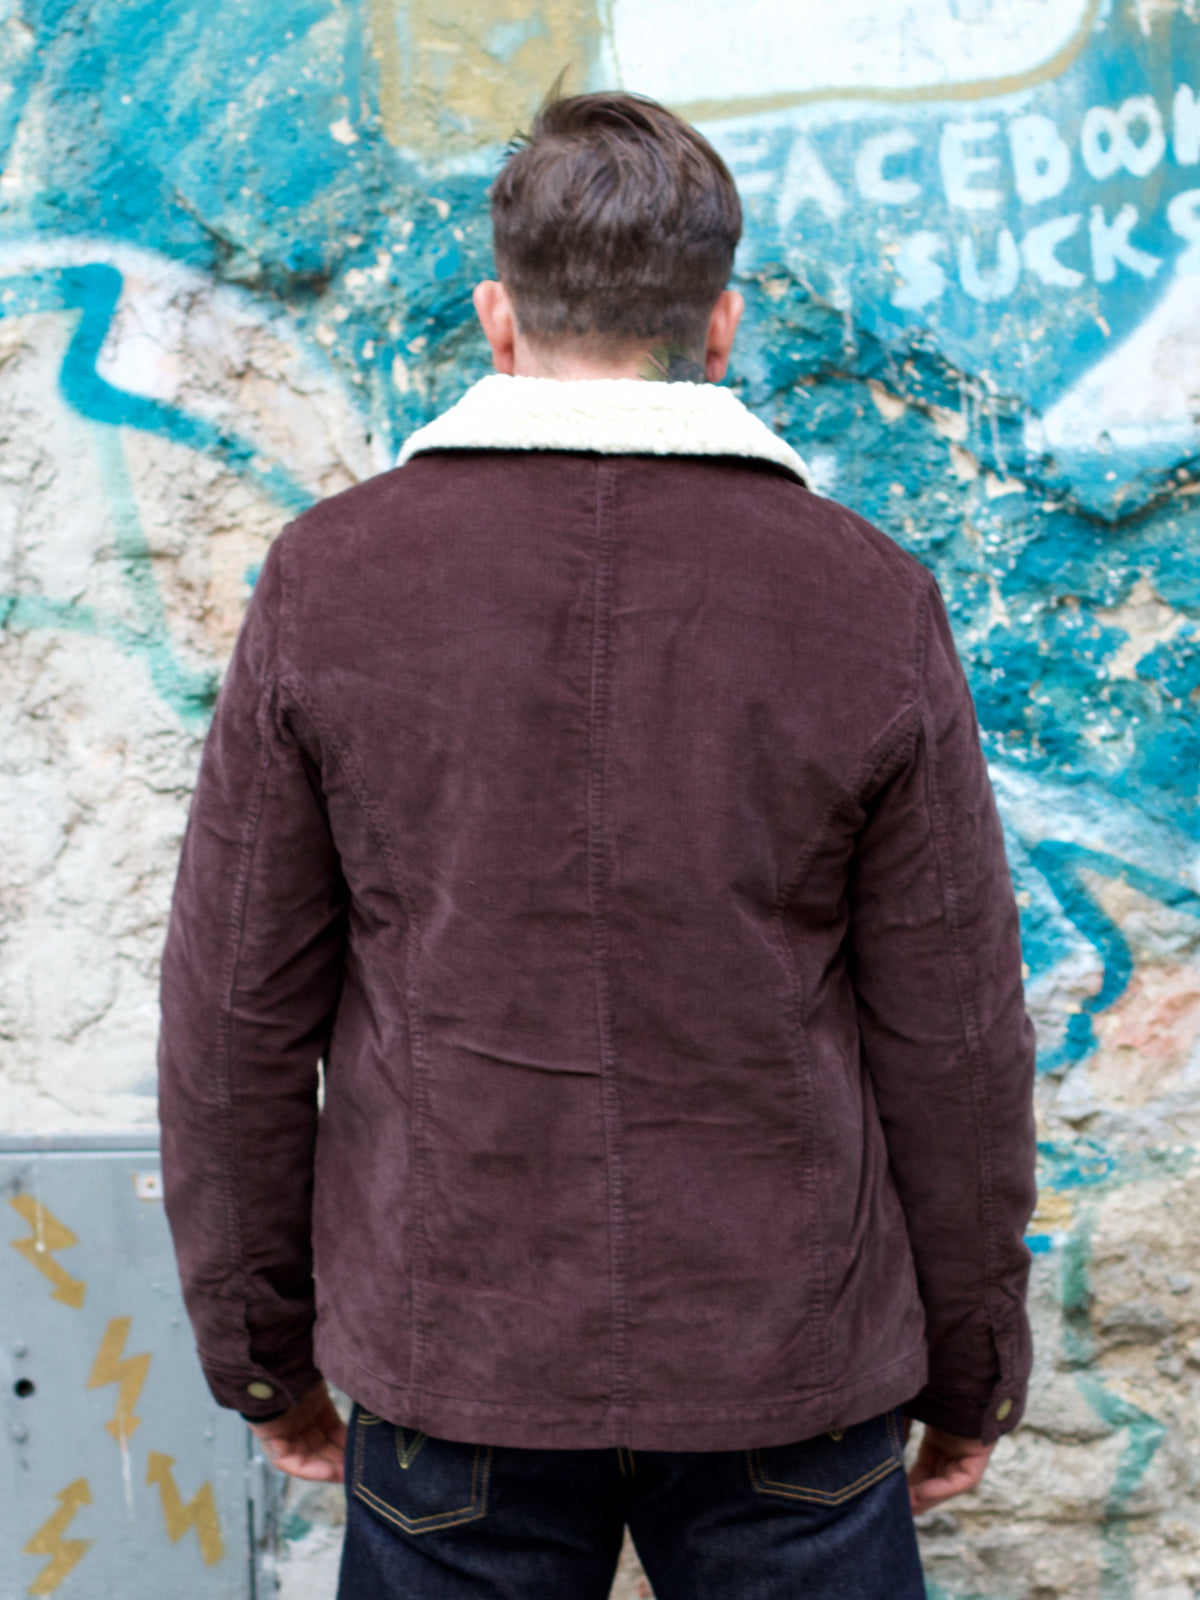 Eat Dust Chore Jacket 673-S Feincord Brown